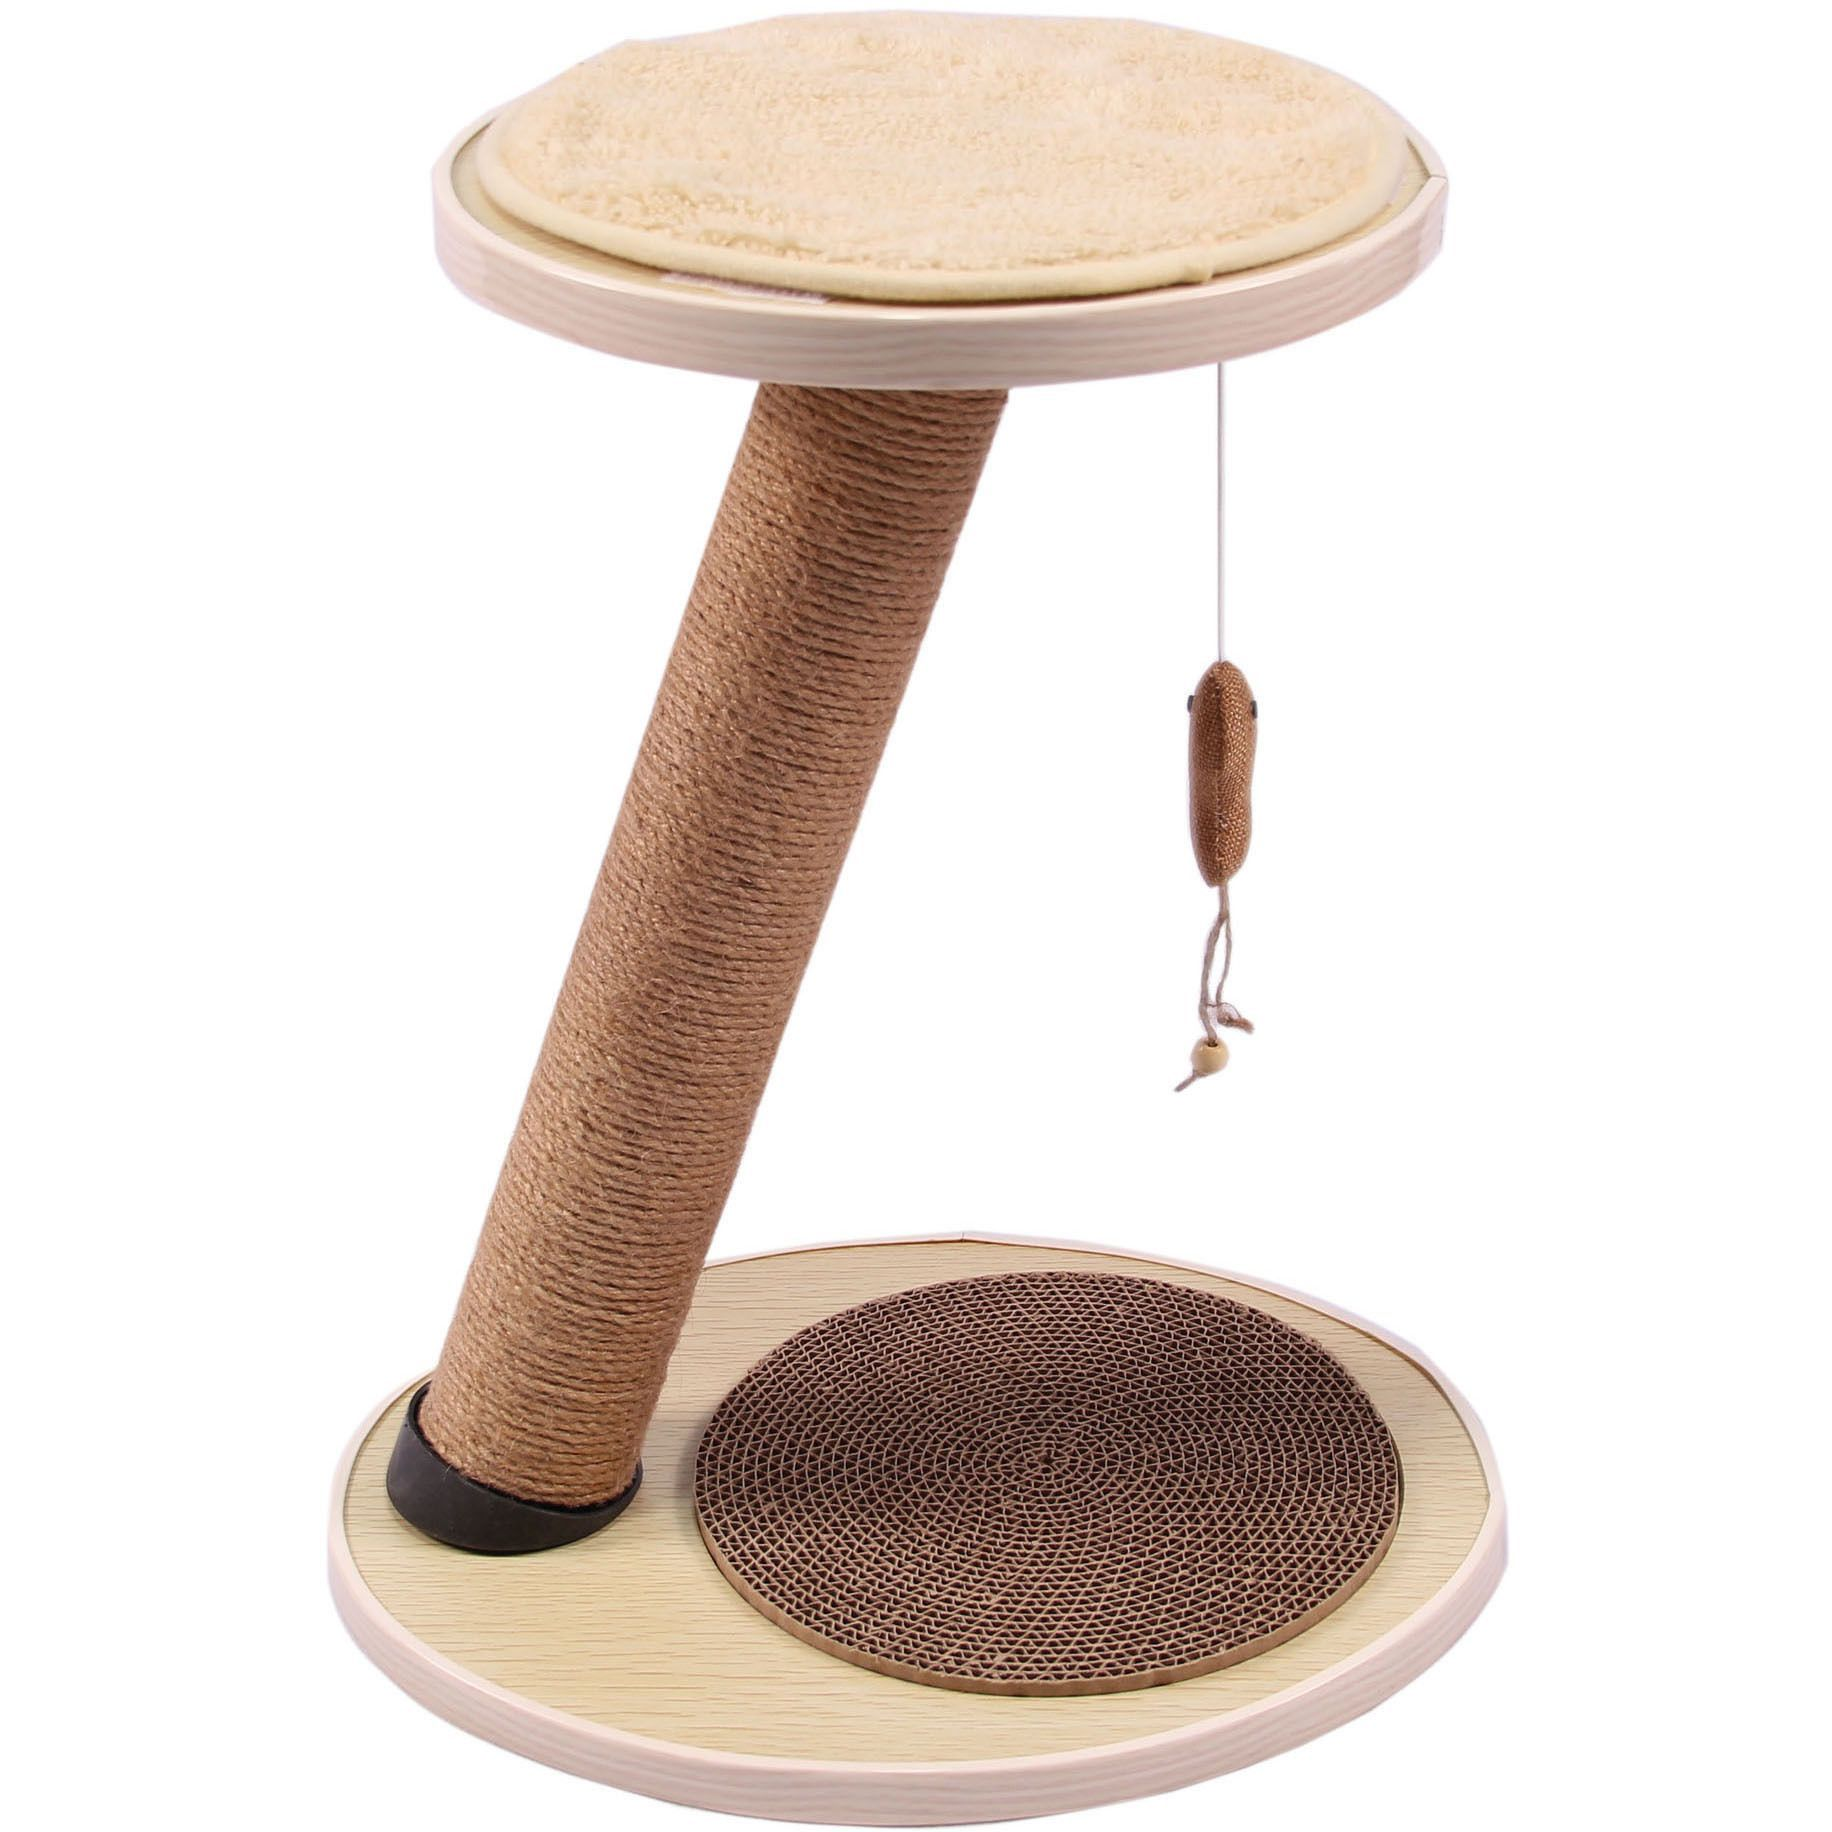 Prevent feline boredom with this cat scratching post from purrrfect